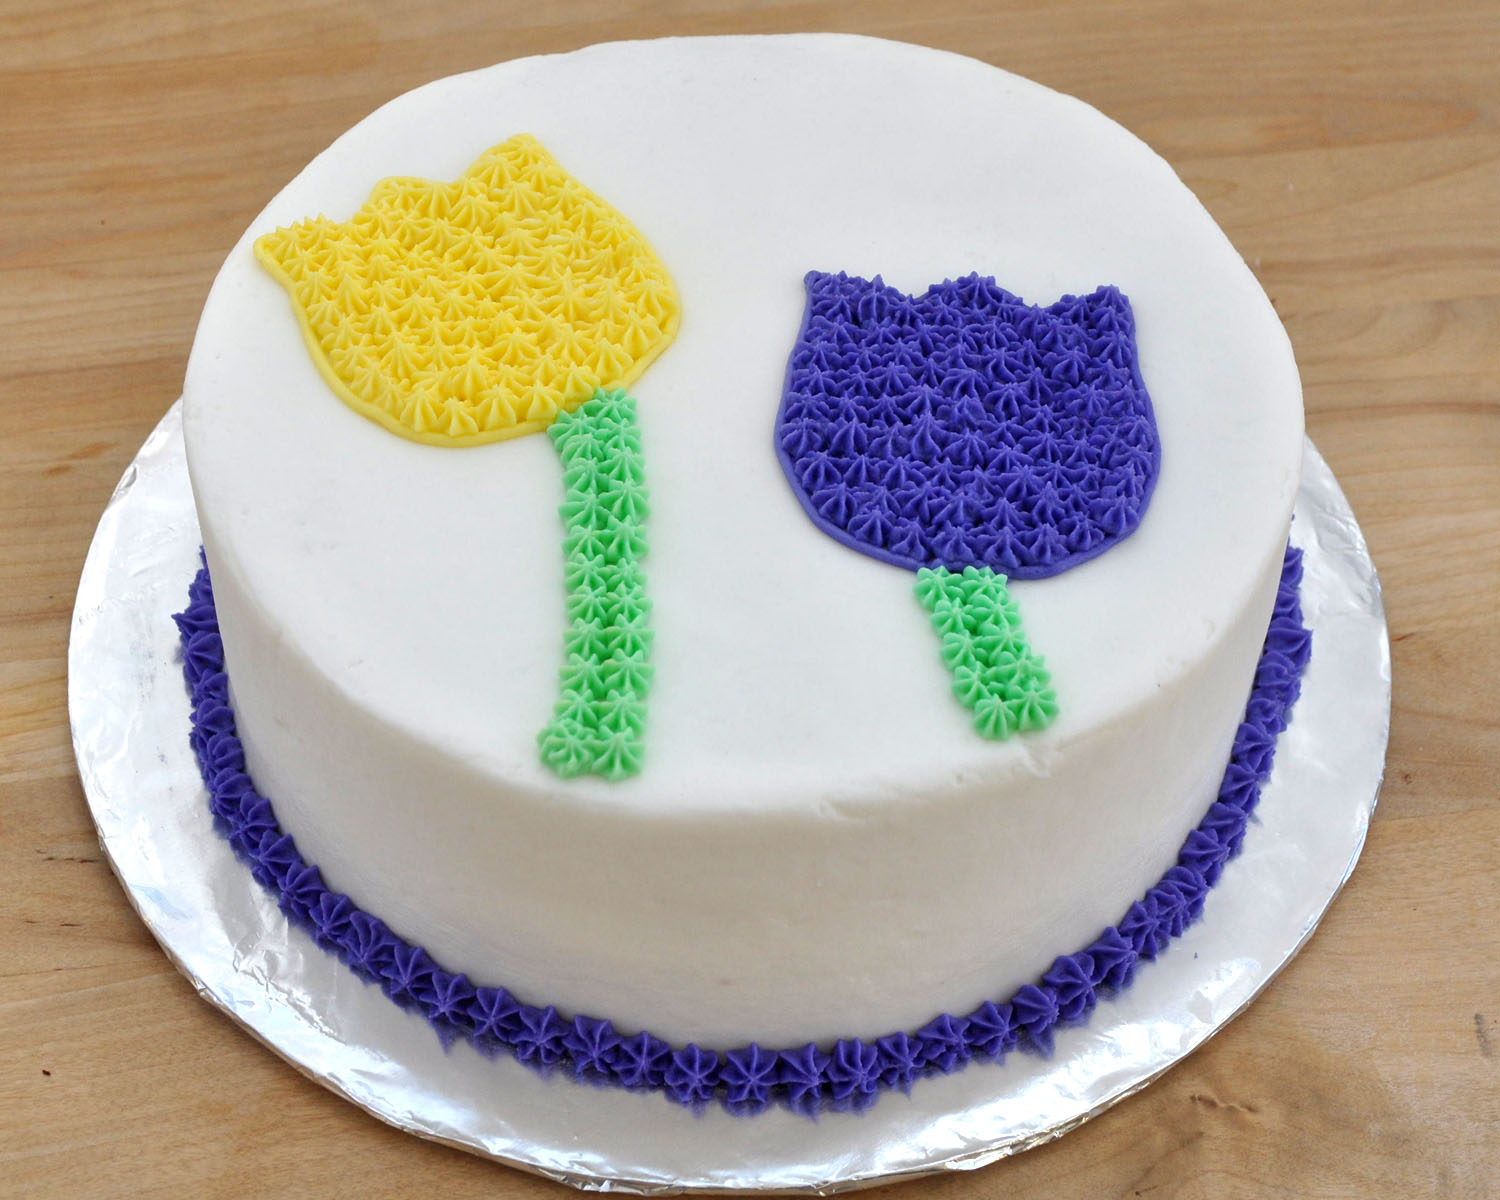 Beki Cook\'s Cake Blog: Cake Decorating 101 - Easy Birthday Cake